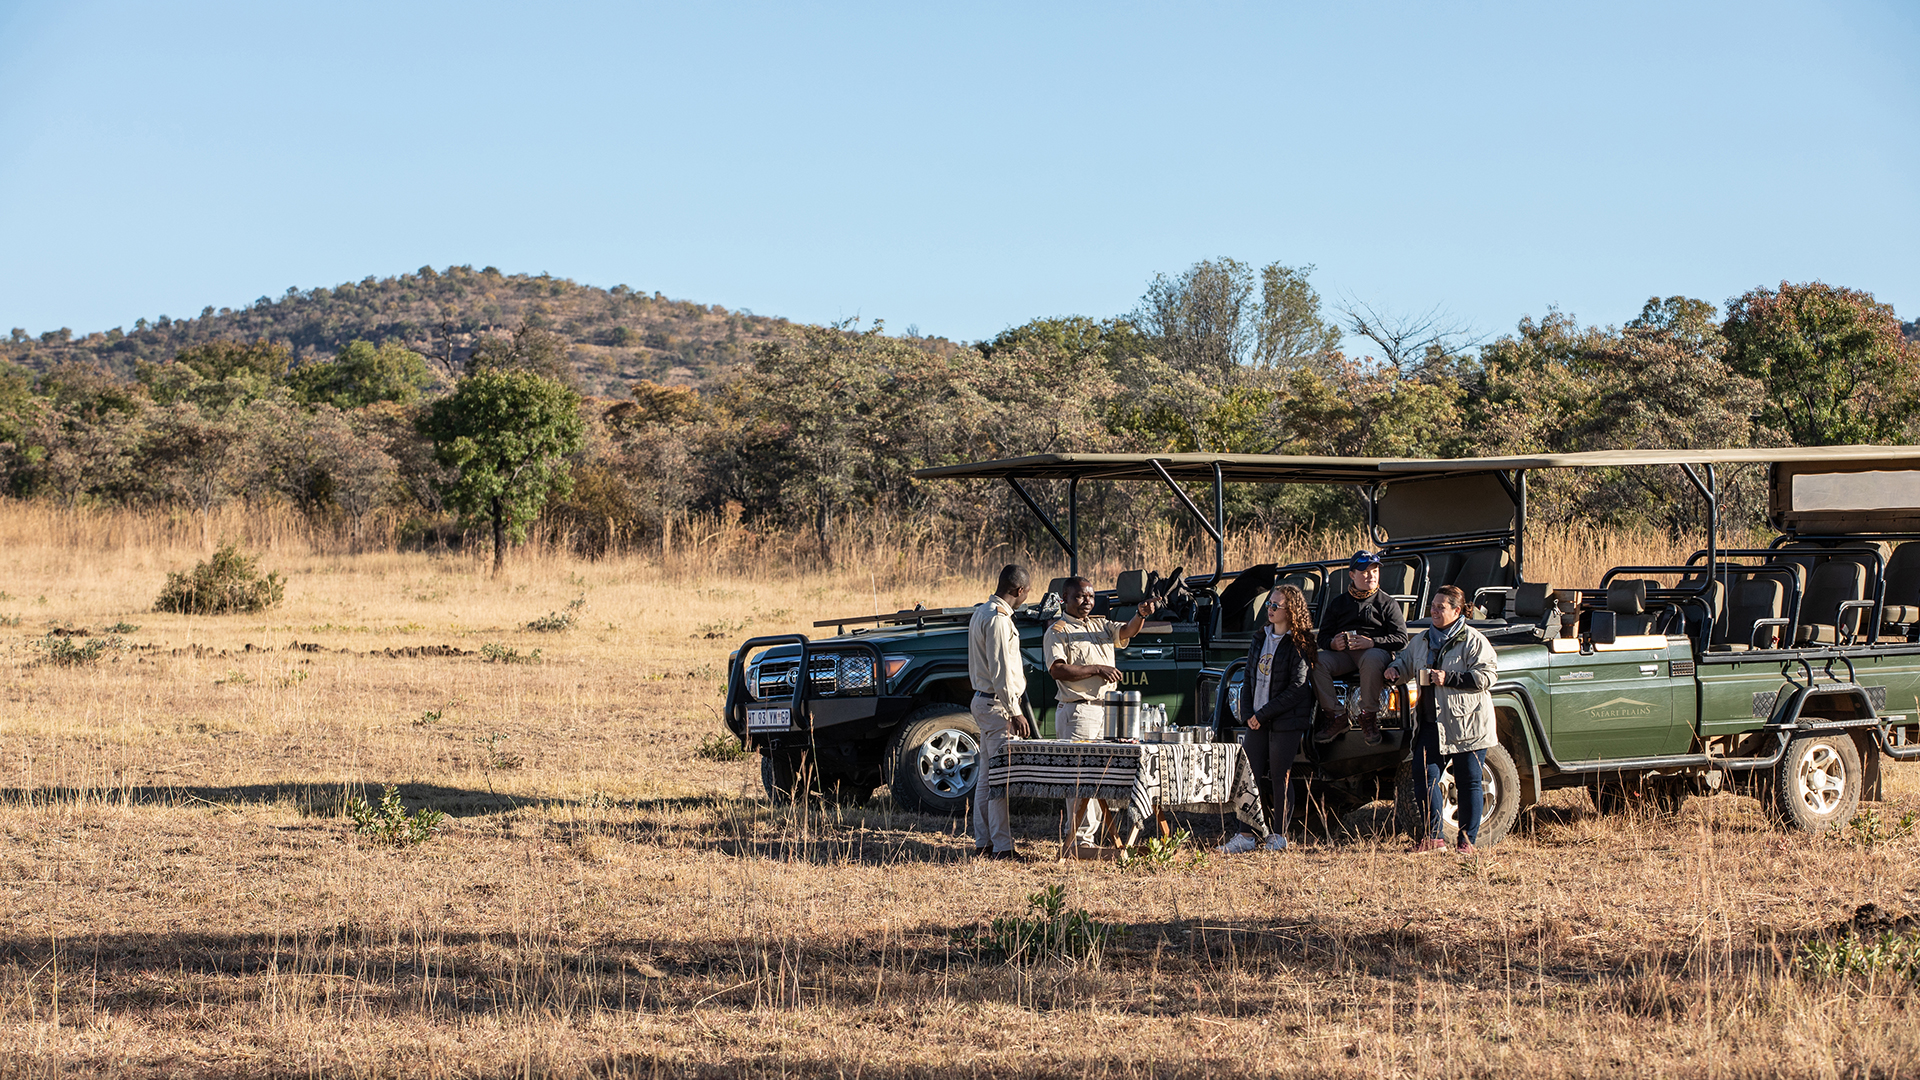 What do you need to know when going on Safari?